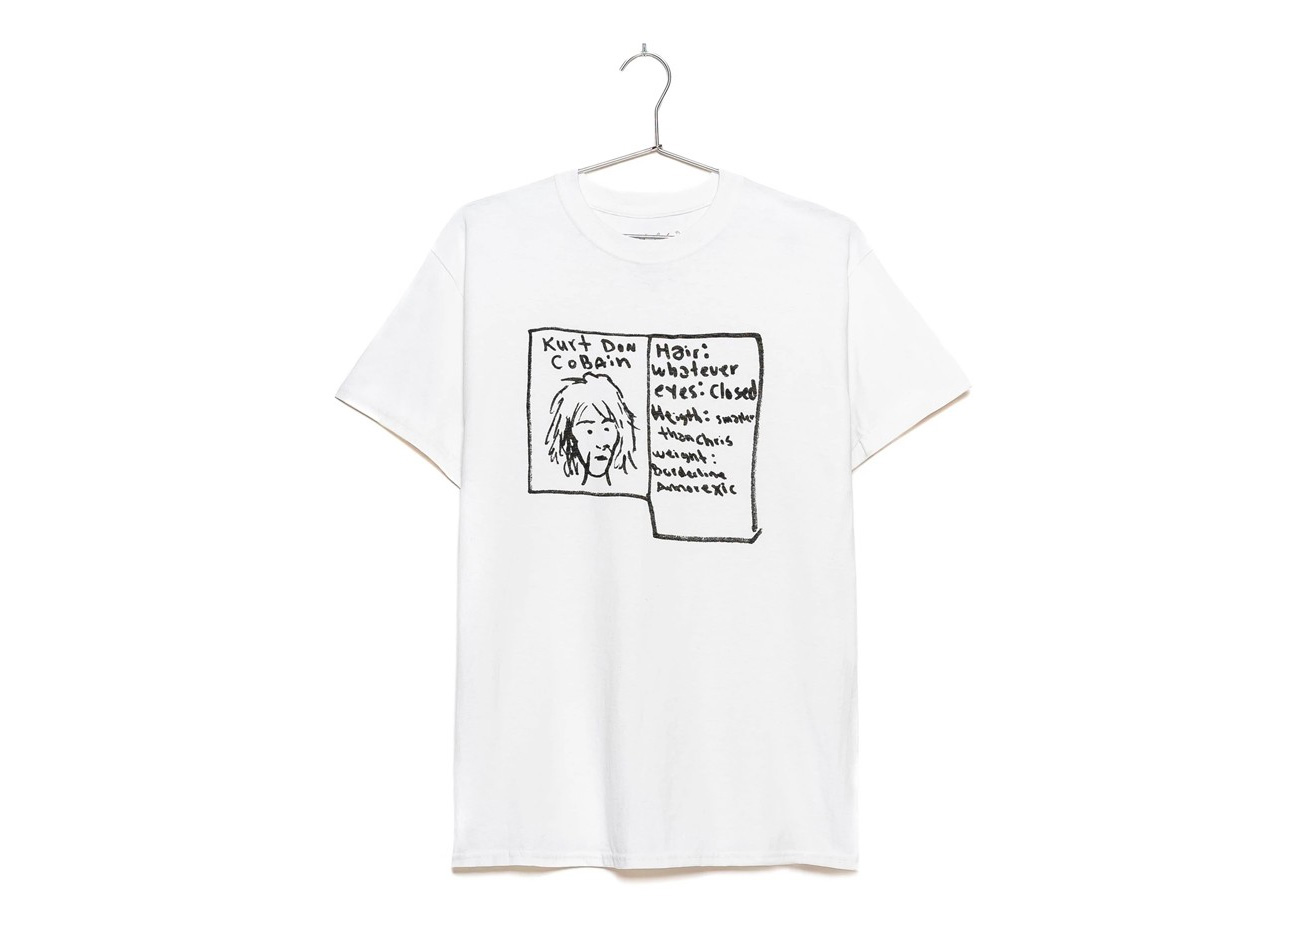 Original Kurt Cobain Art You Can Wear at werd.com